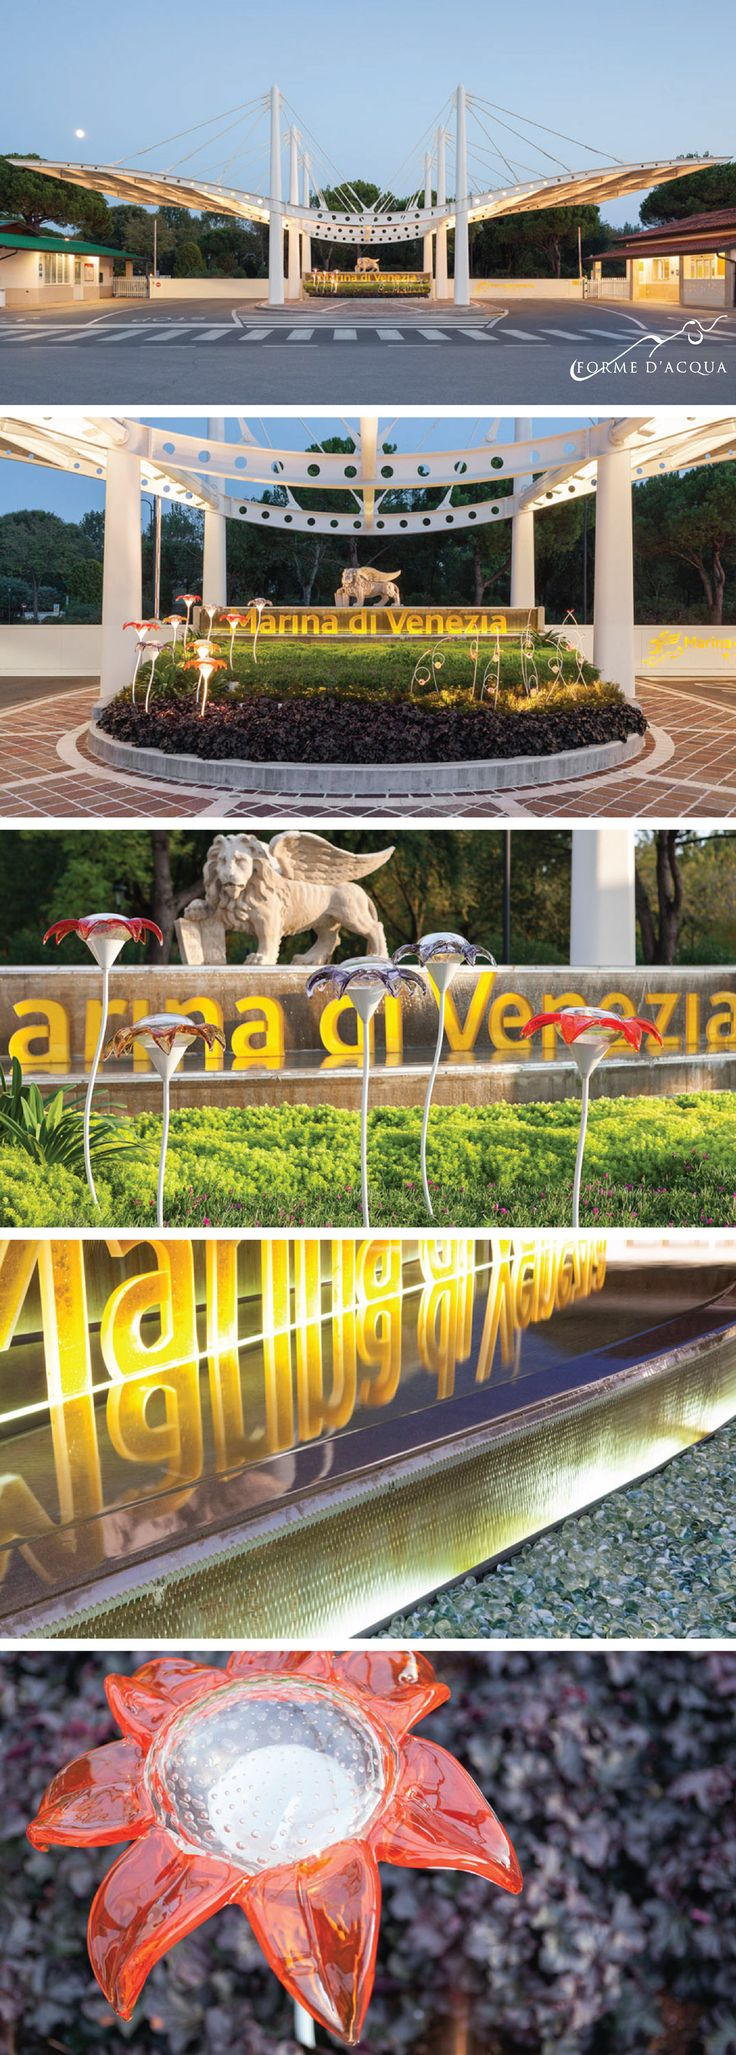 """Forme d'Acqua created the new entrance, """"The garden of wonders"""", which contains a glass and water garden designed by the architect S. M. Favrin. Marina di Venezia Campsite is one of the largest and most prestigious open-air holiday centres in Europe."""